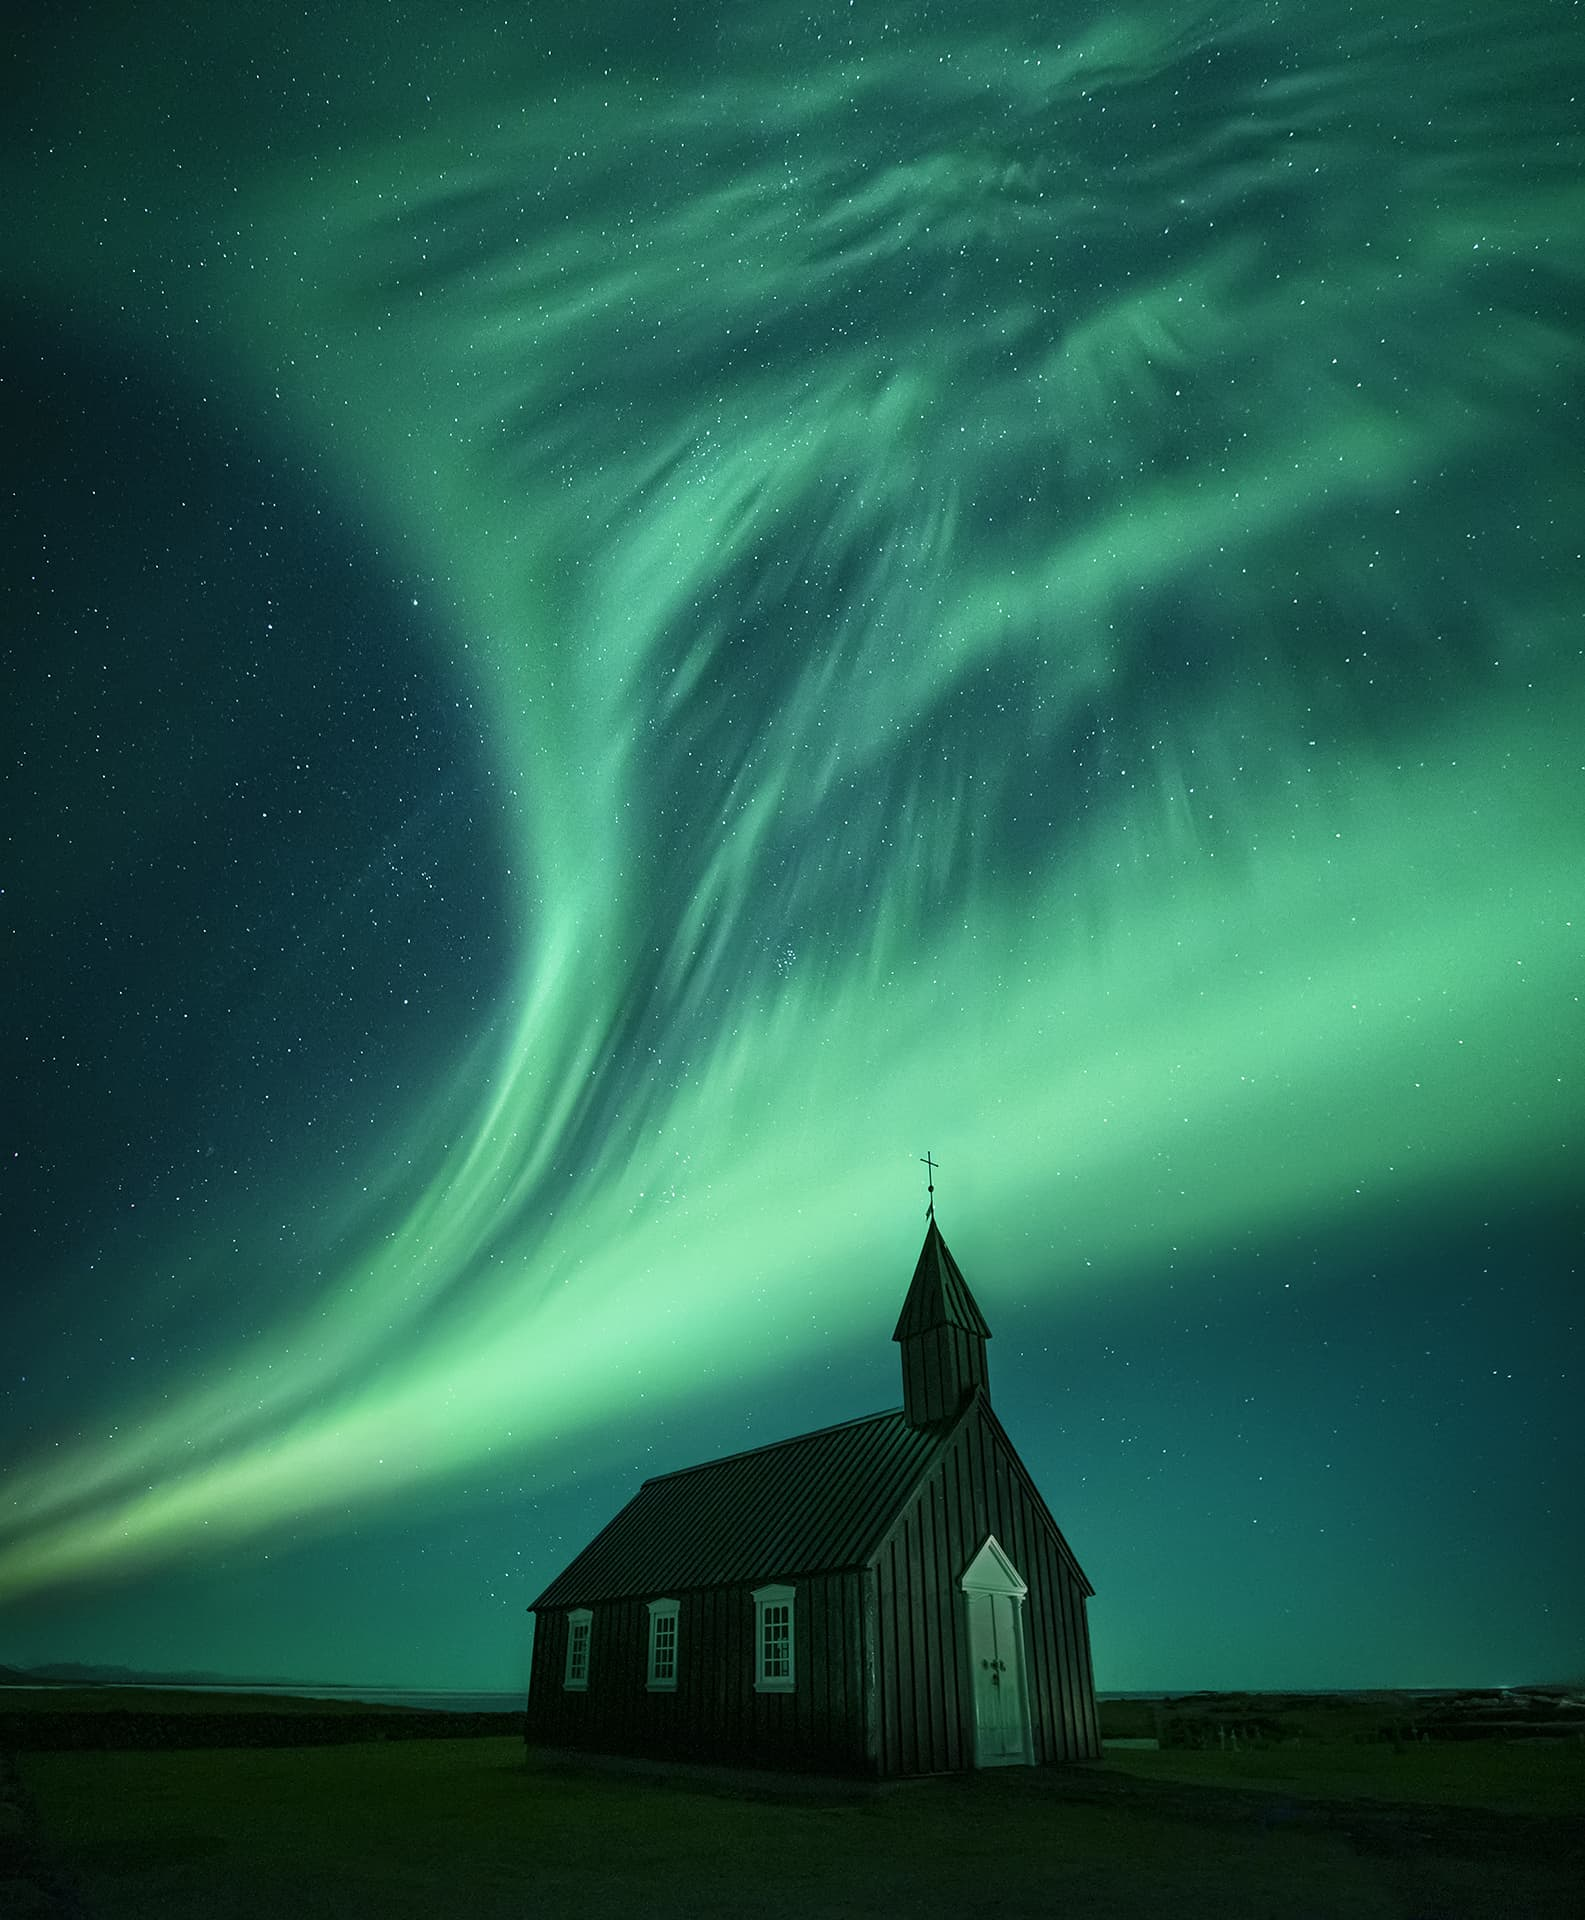 Best strong Aurora Borealis images